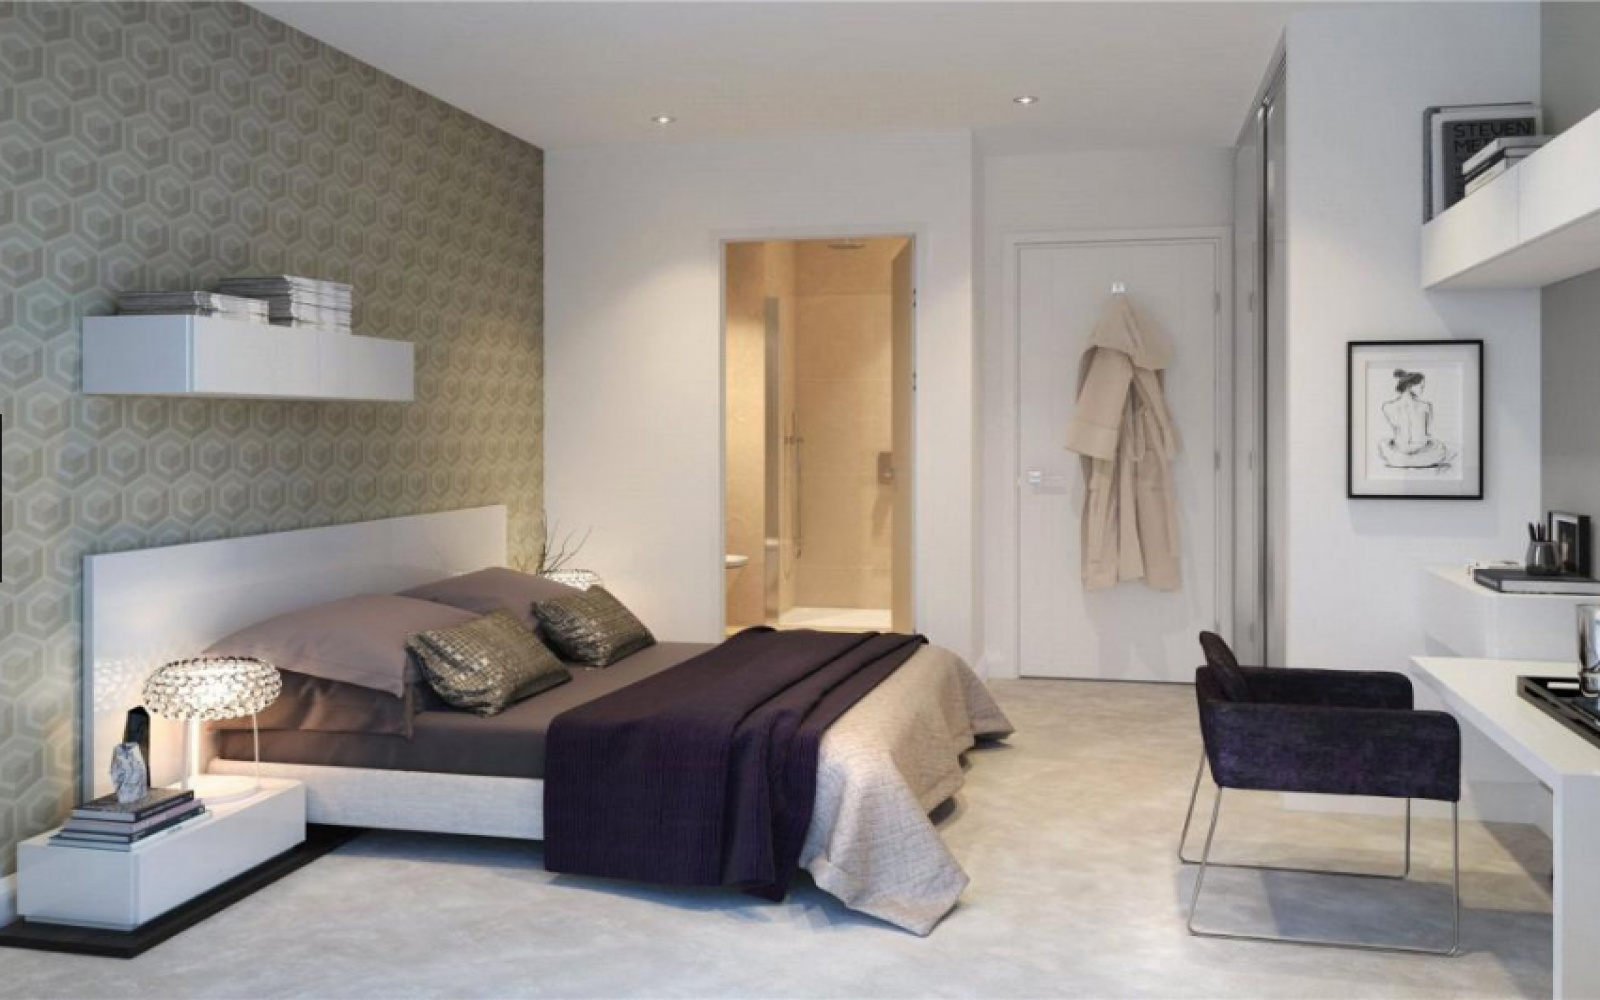 2 Bedroom Flat For Sale In Doulton Pointmaincity Estates Real Estate Agents In London